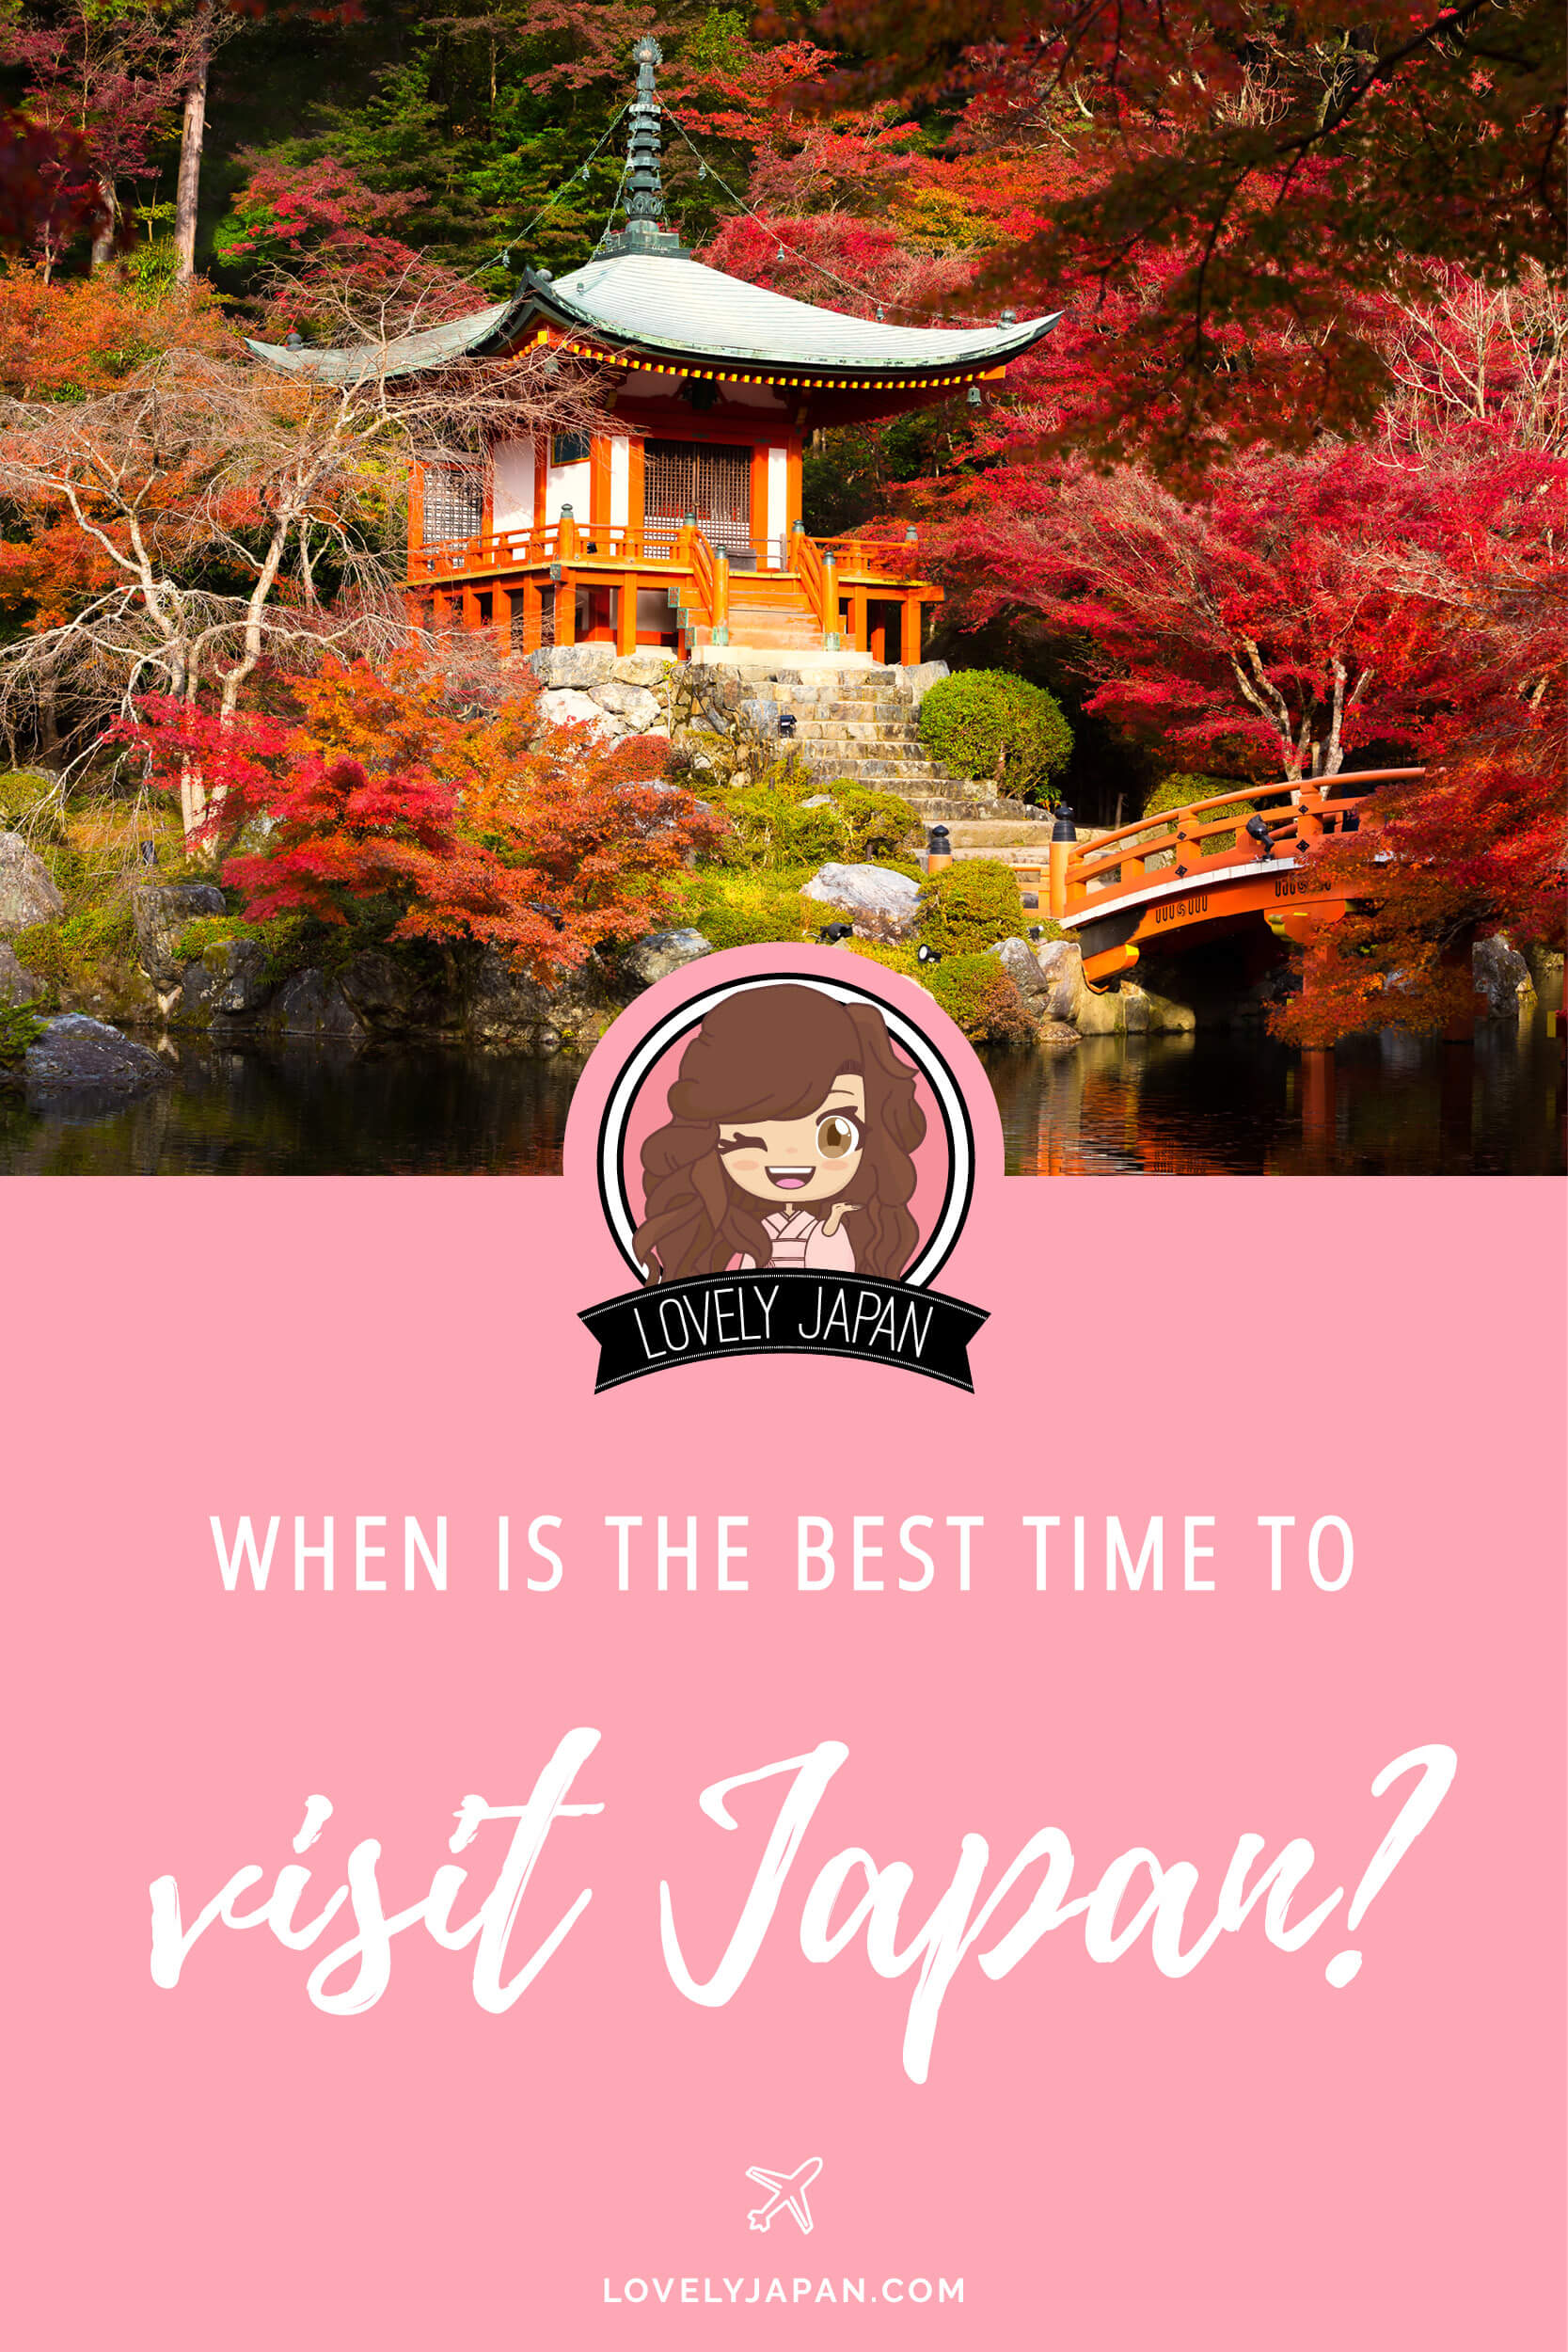 When is the Best Time to Visit Japan?